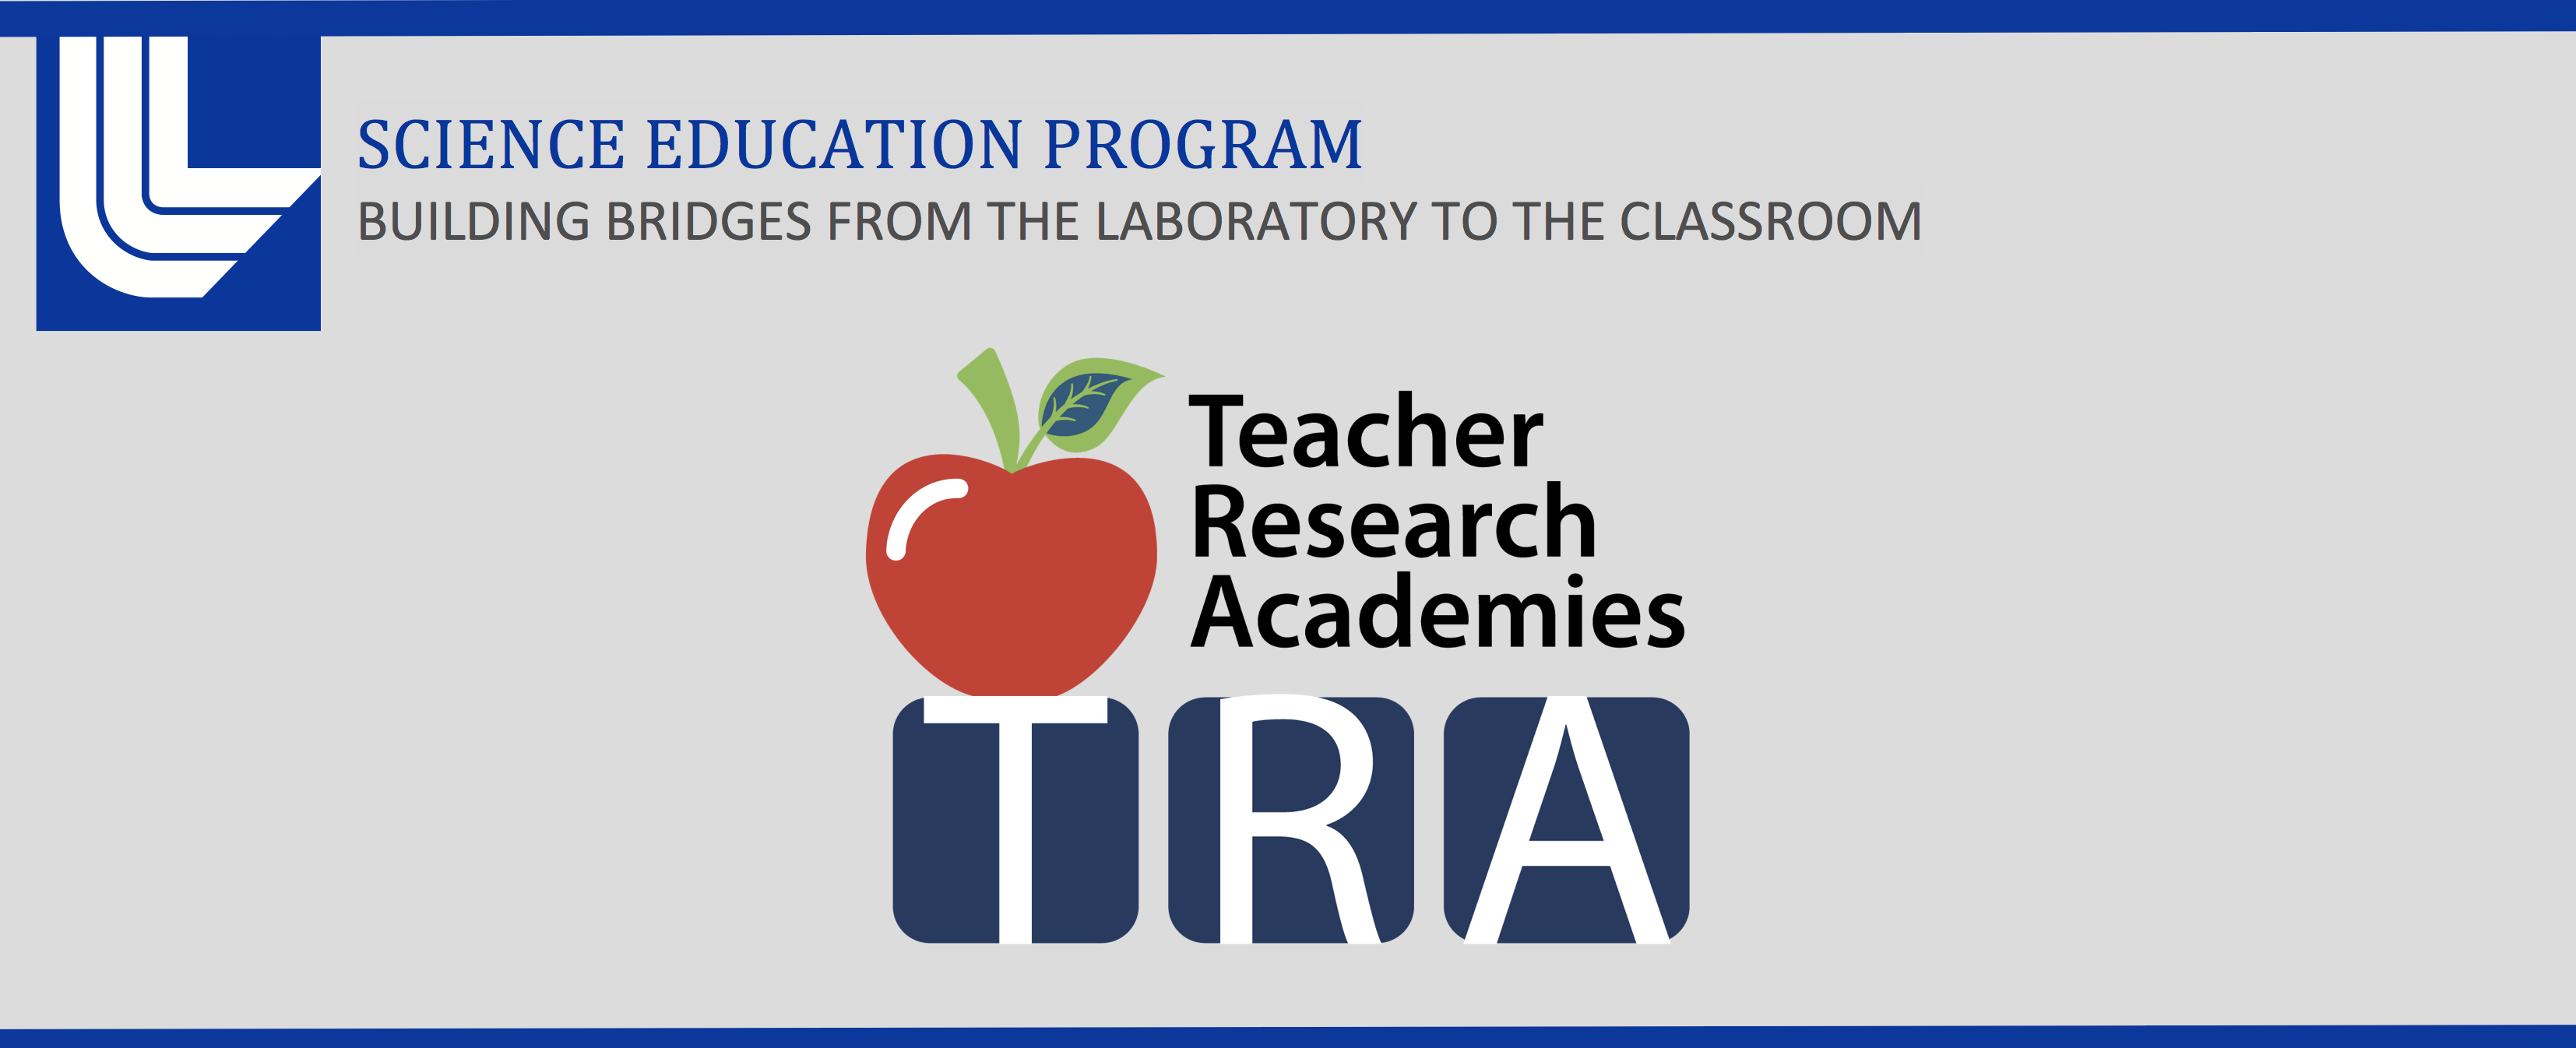 Lawrence Livermore National Laboratory | Teacher Research Academy